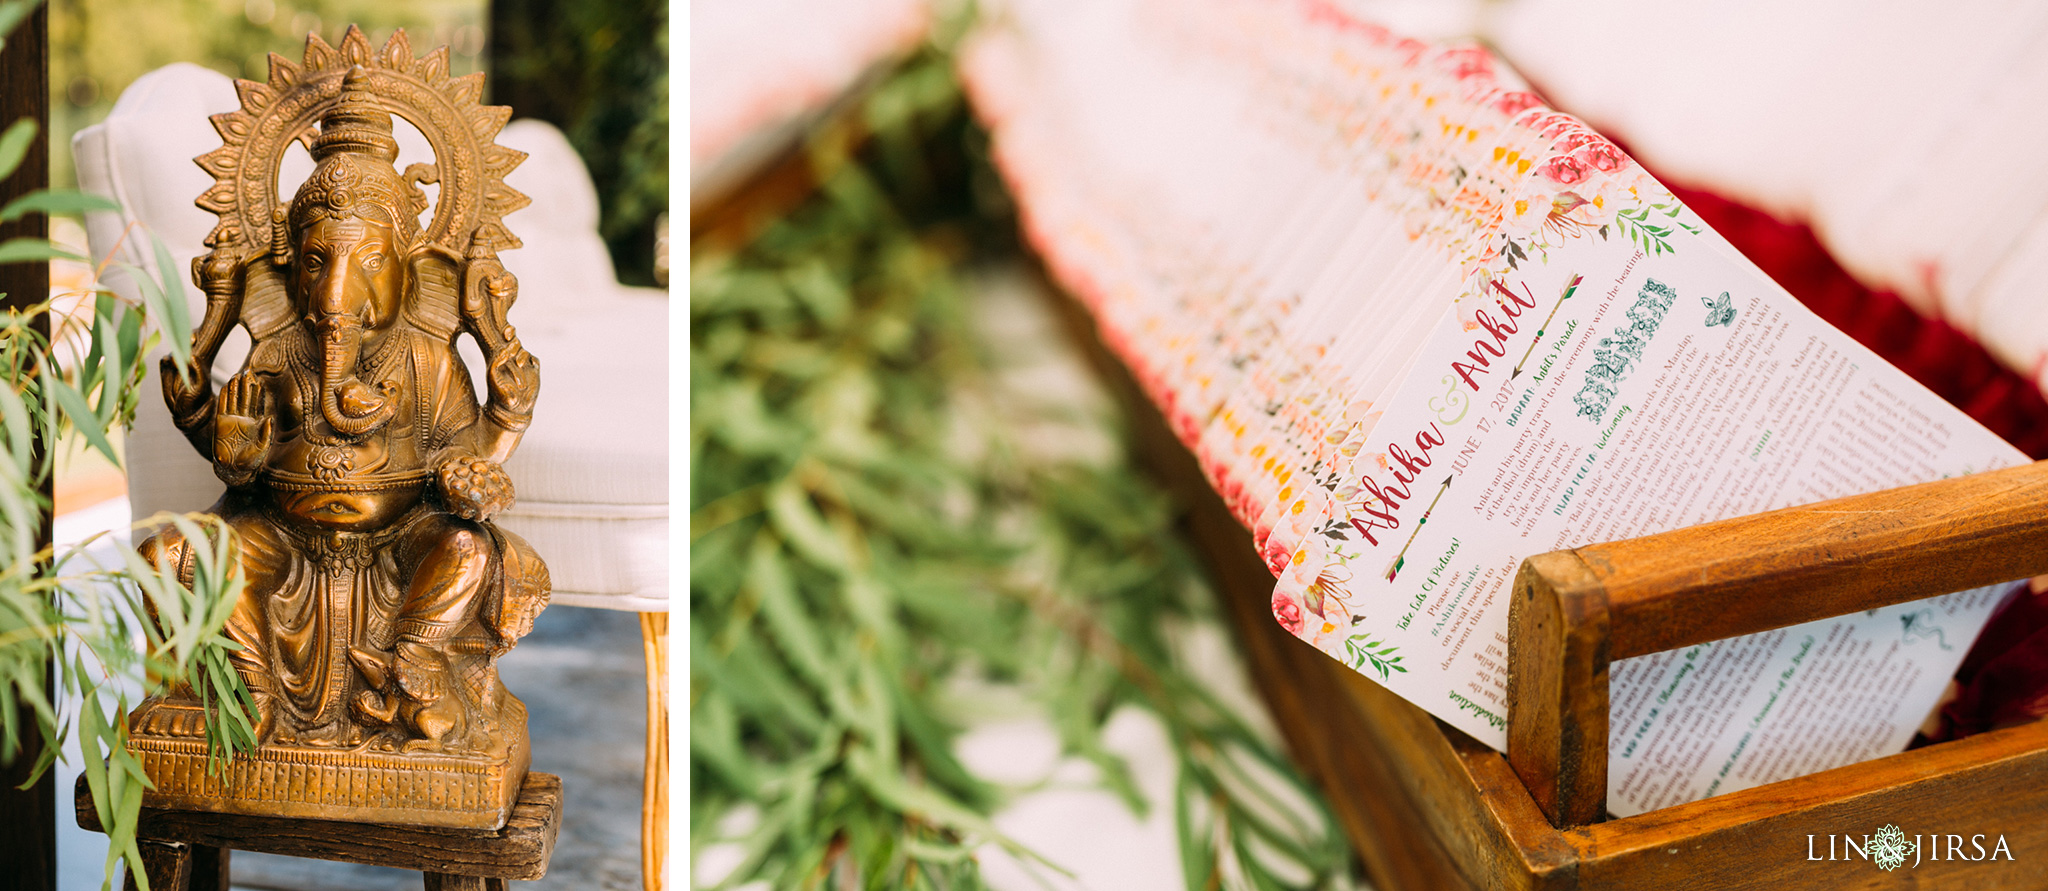 ethereal open air resort wedding ceremony invitation details